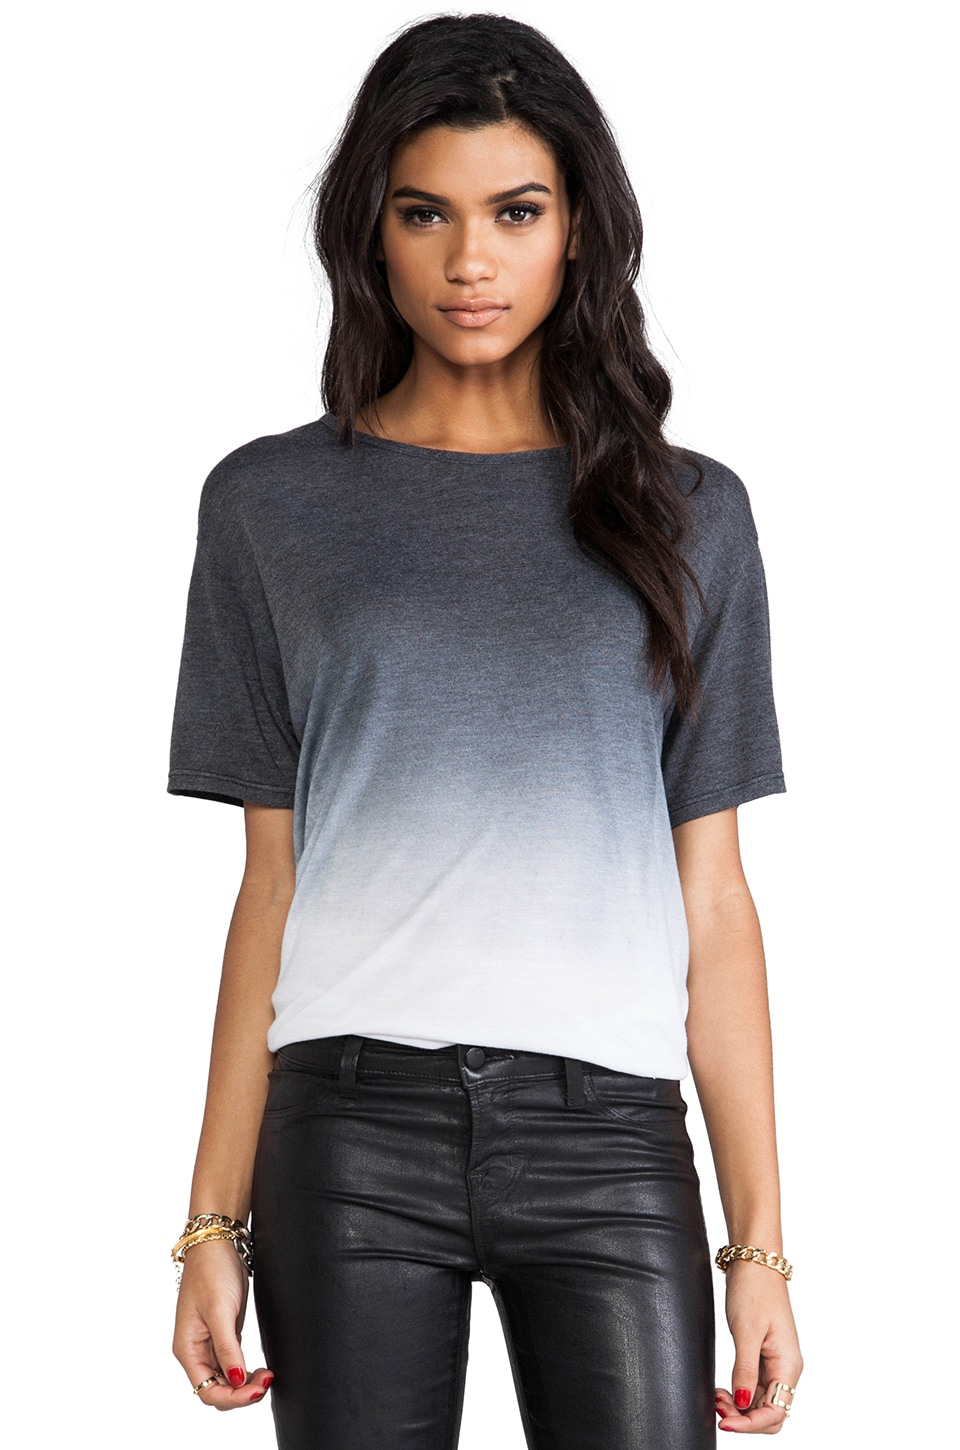 Saint Grace Carson Oversized Tee in Black Ombre